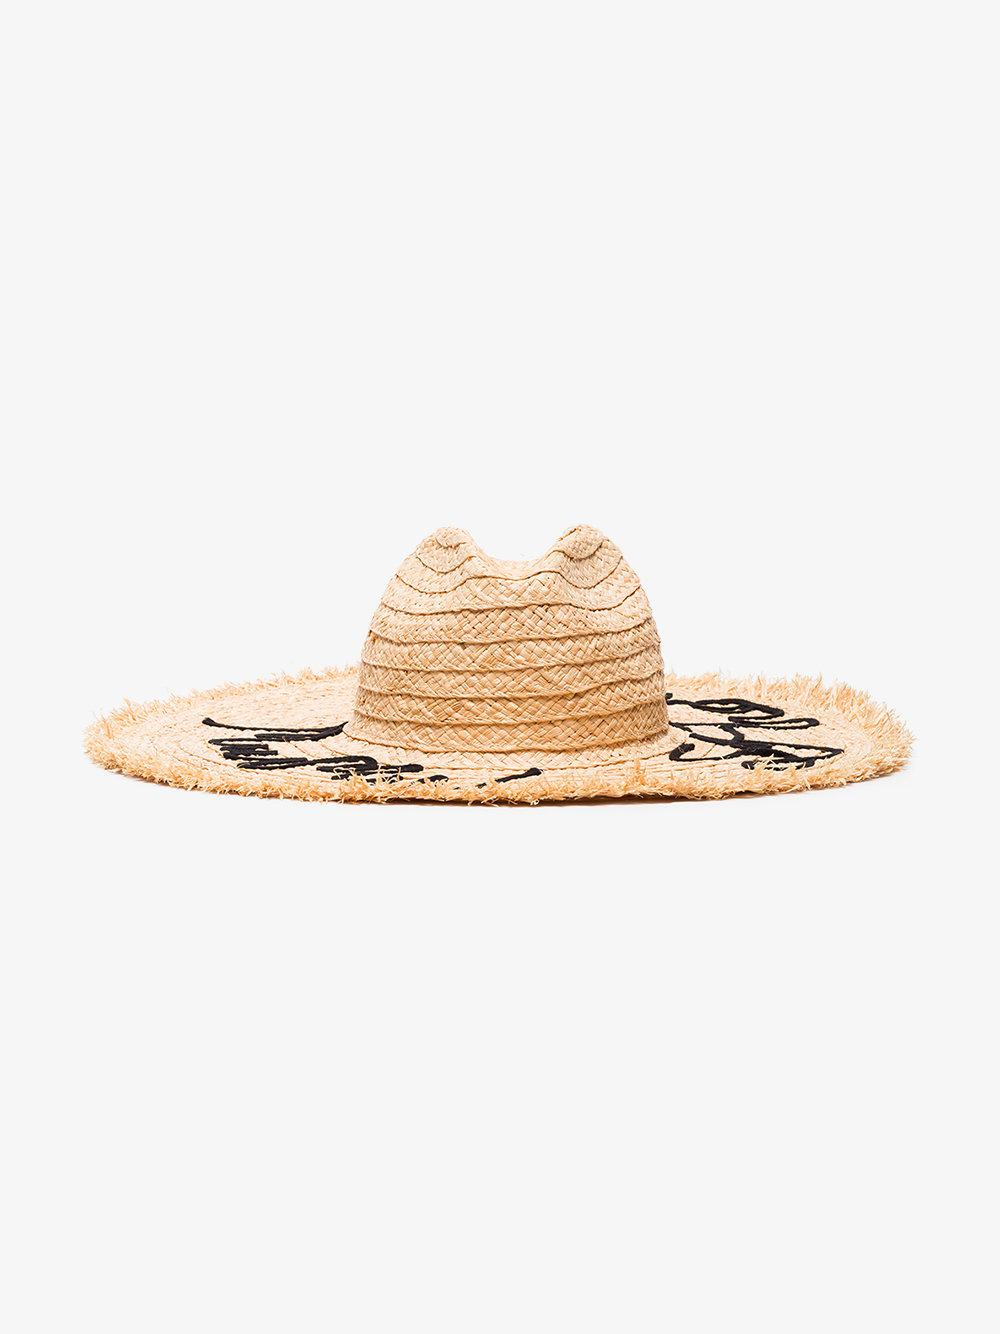 Lyst - Miu Miu Embroidered Straw Hat in Natural c784cd76f6f